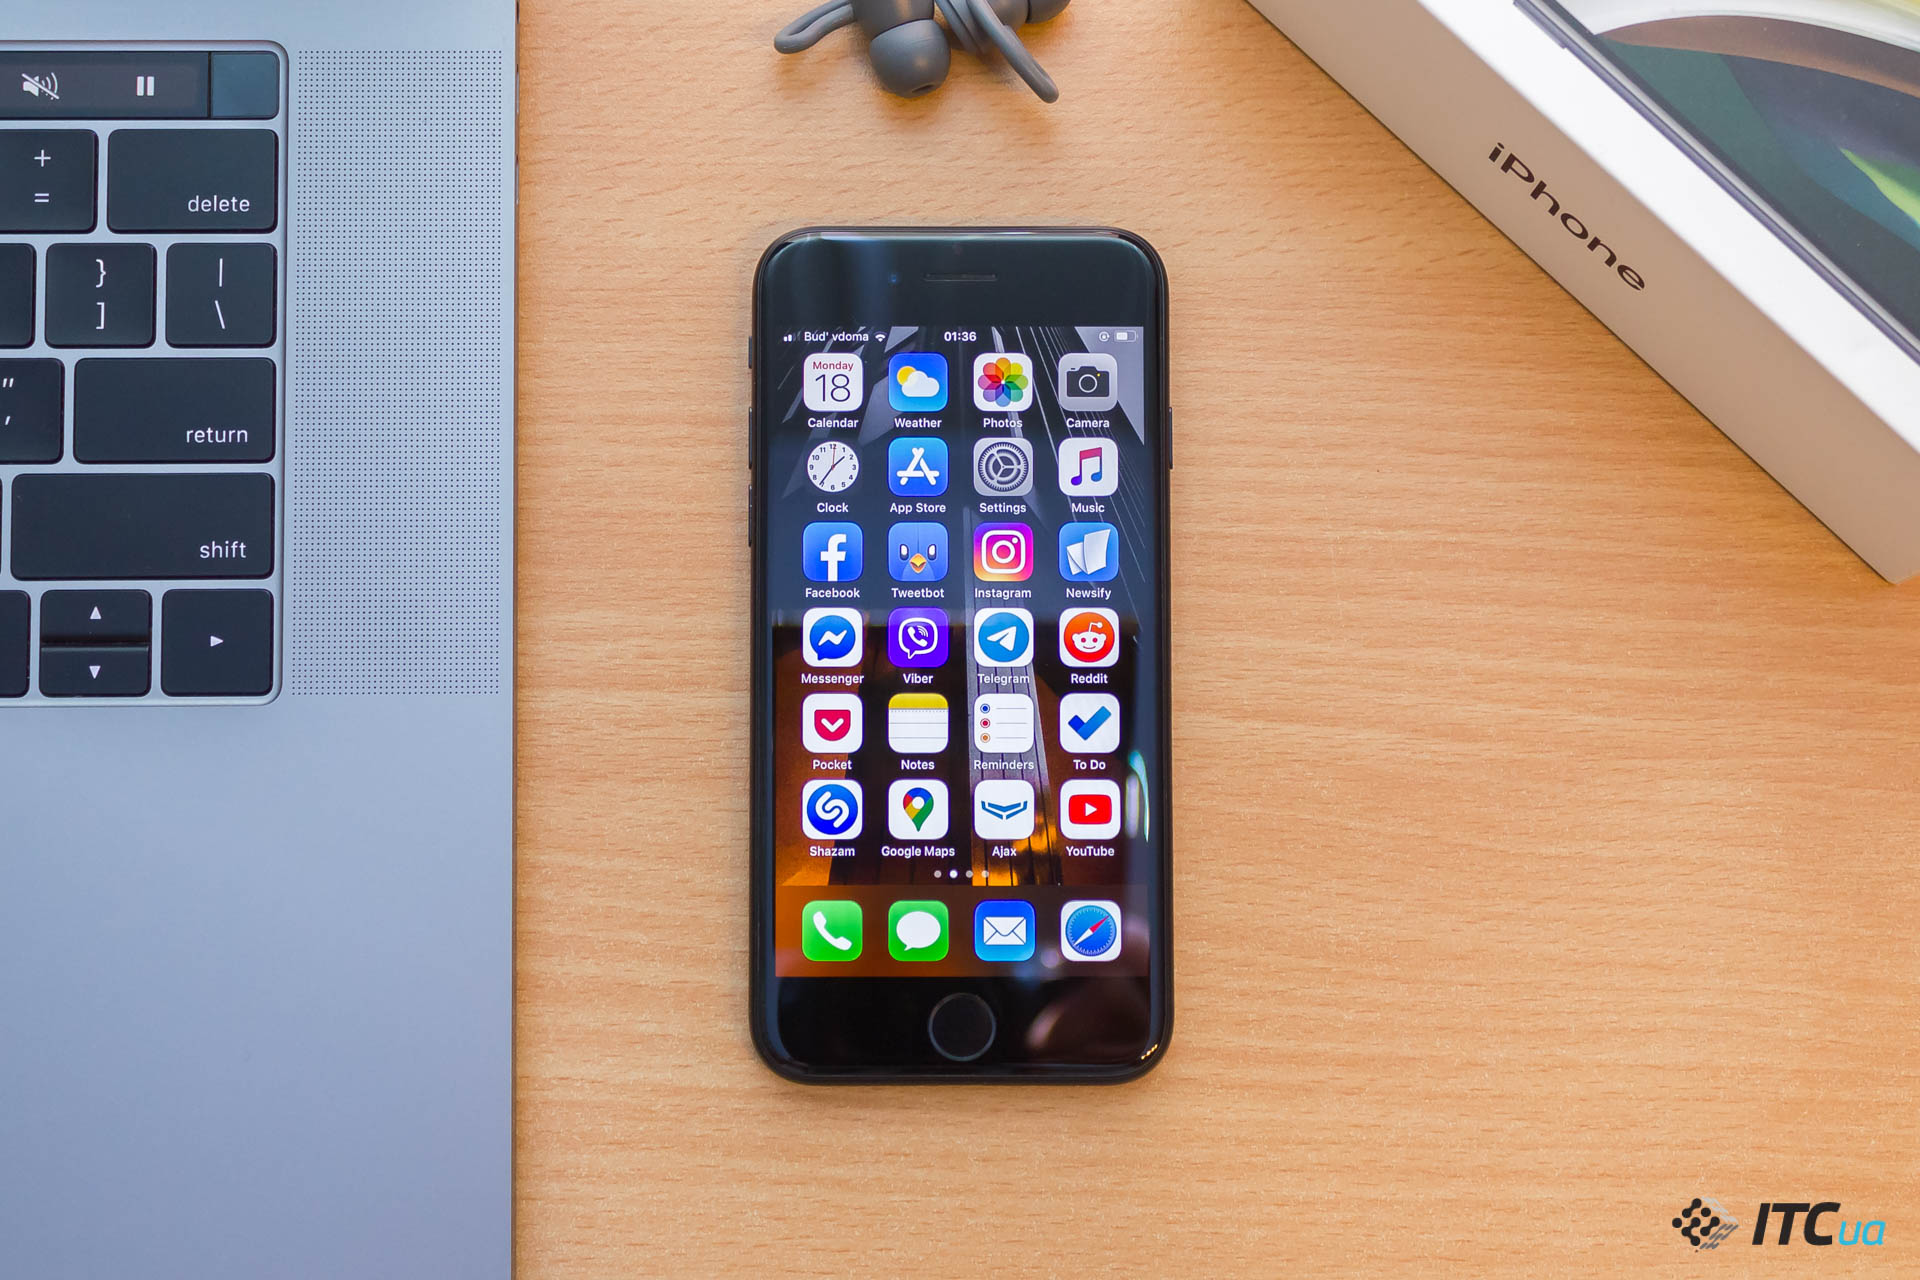 Review of the smartphone Apple iPhone SE (2020)